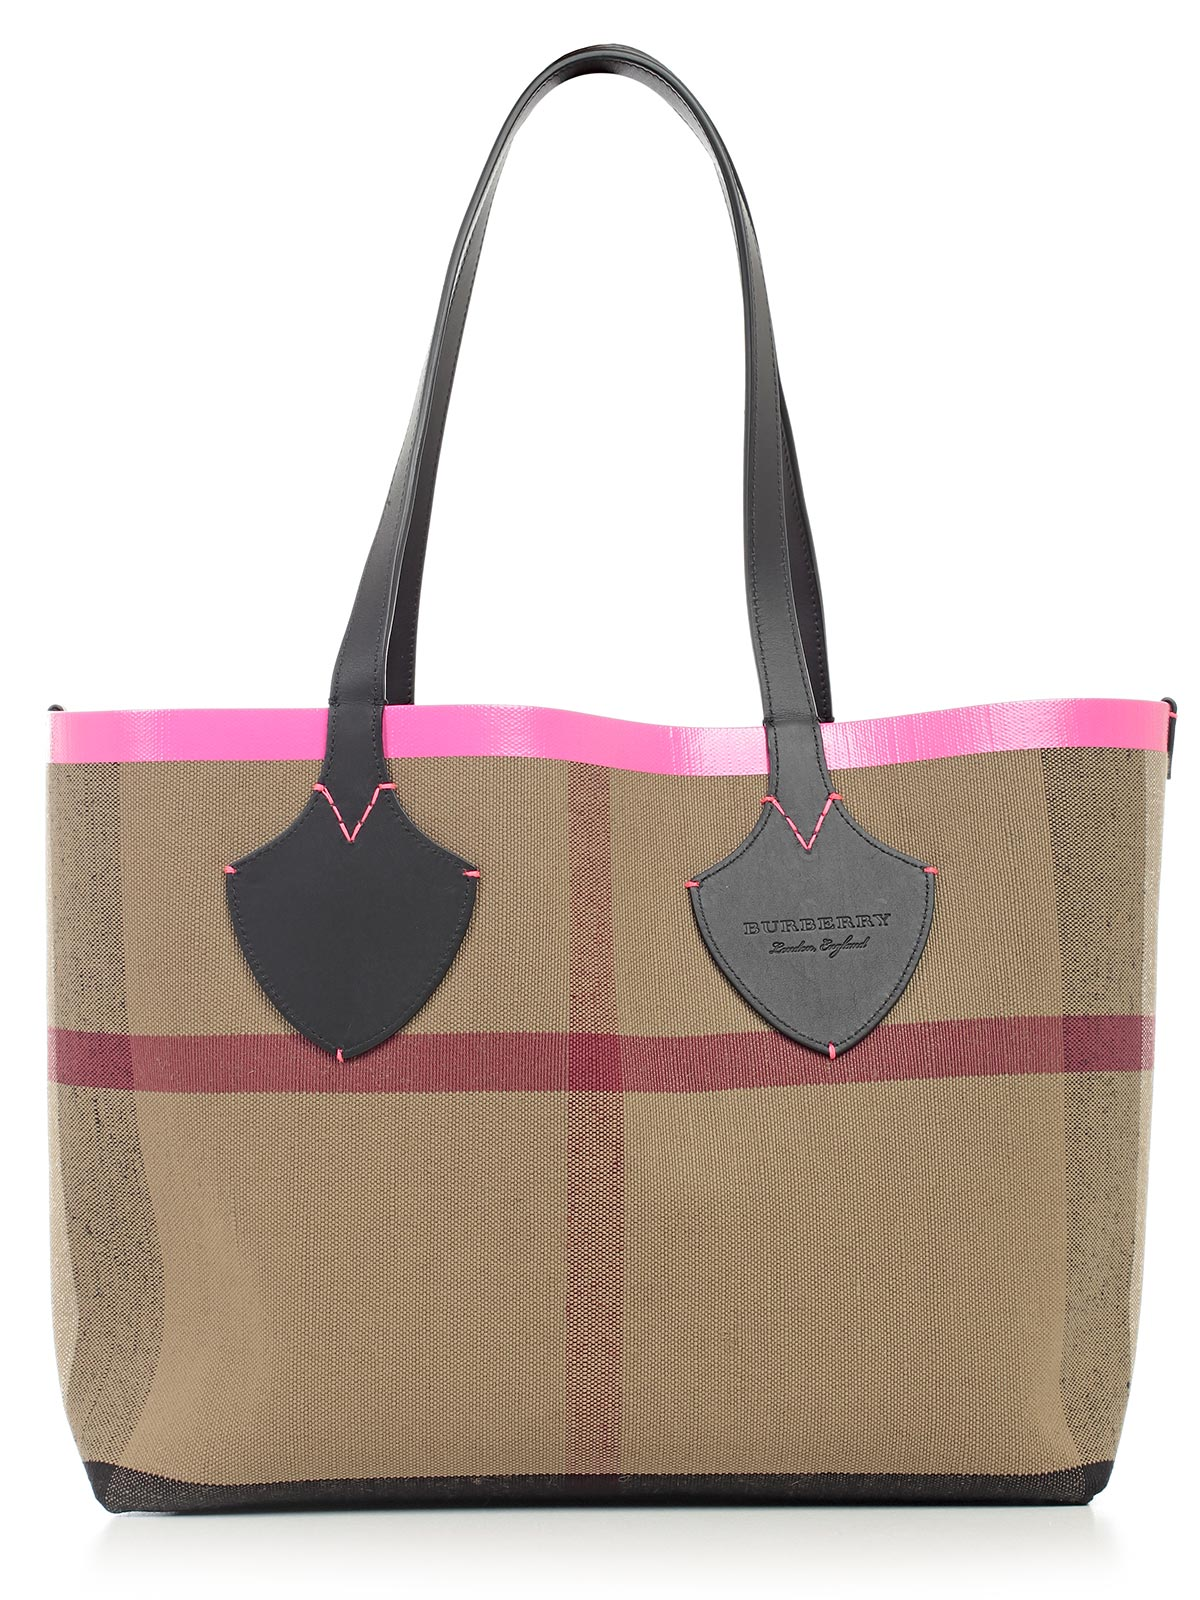 Picture of Burberry Totes